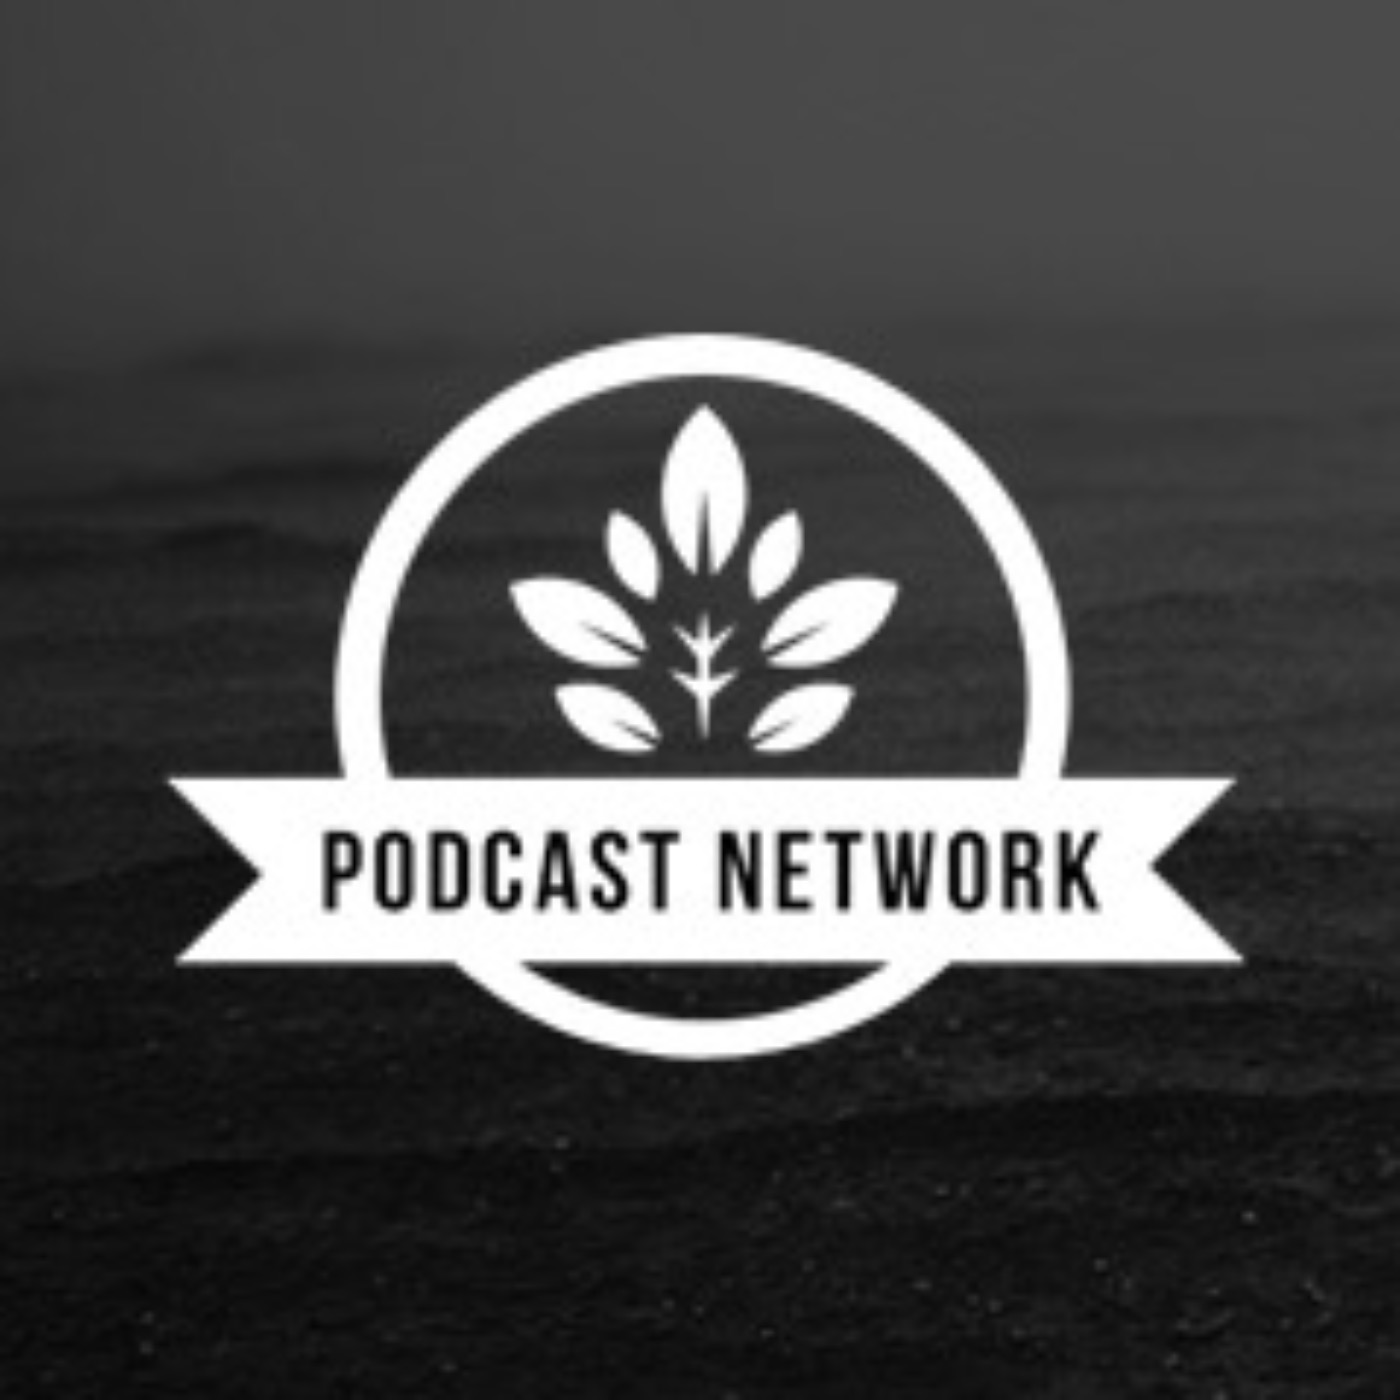 CiRCE Institute Podcast Network by CiRCE Institute on Apple Podcasts